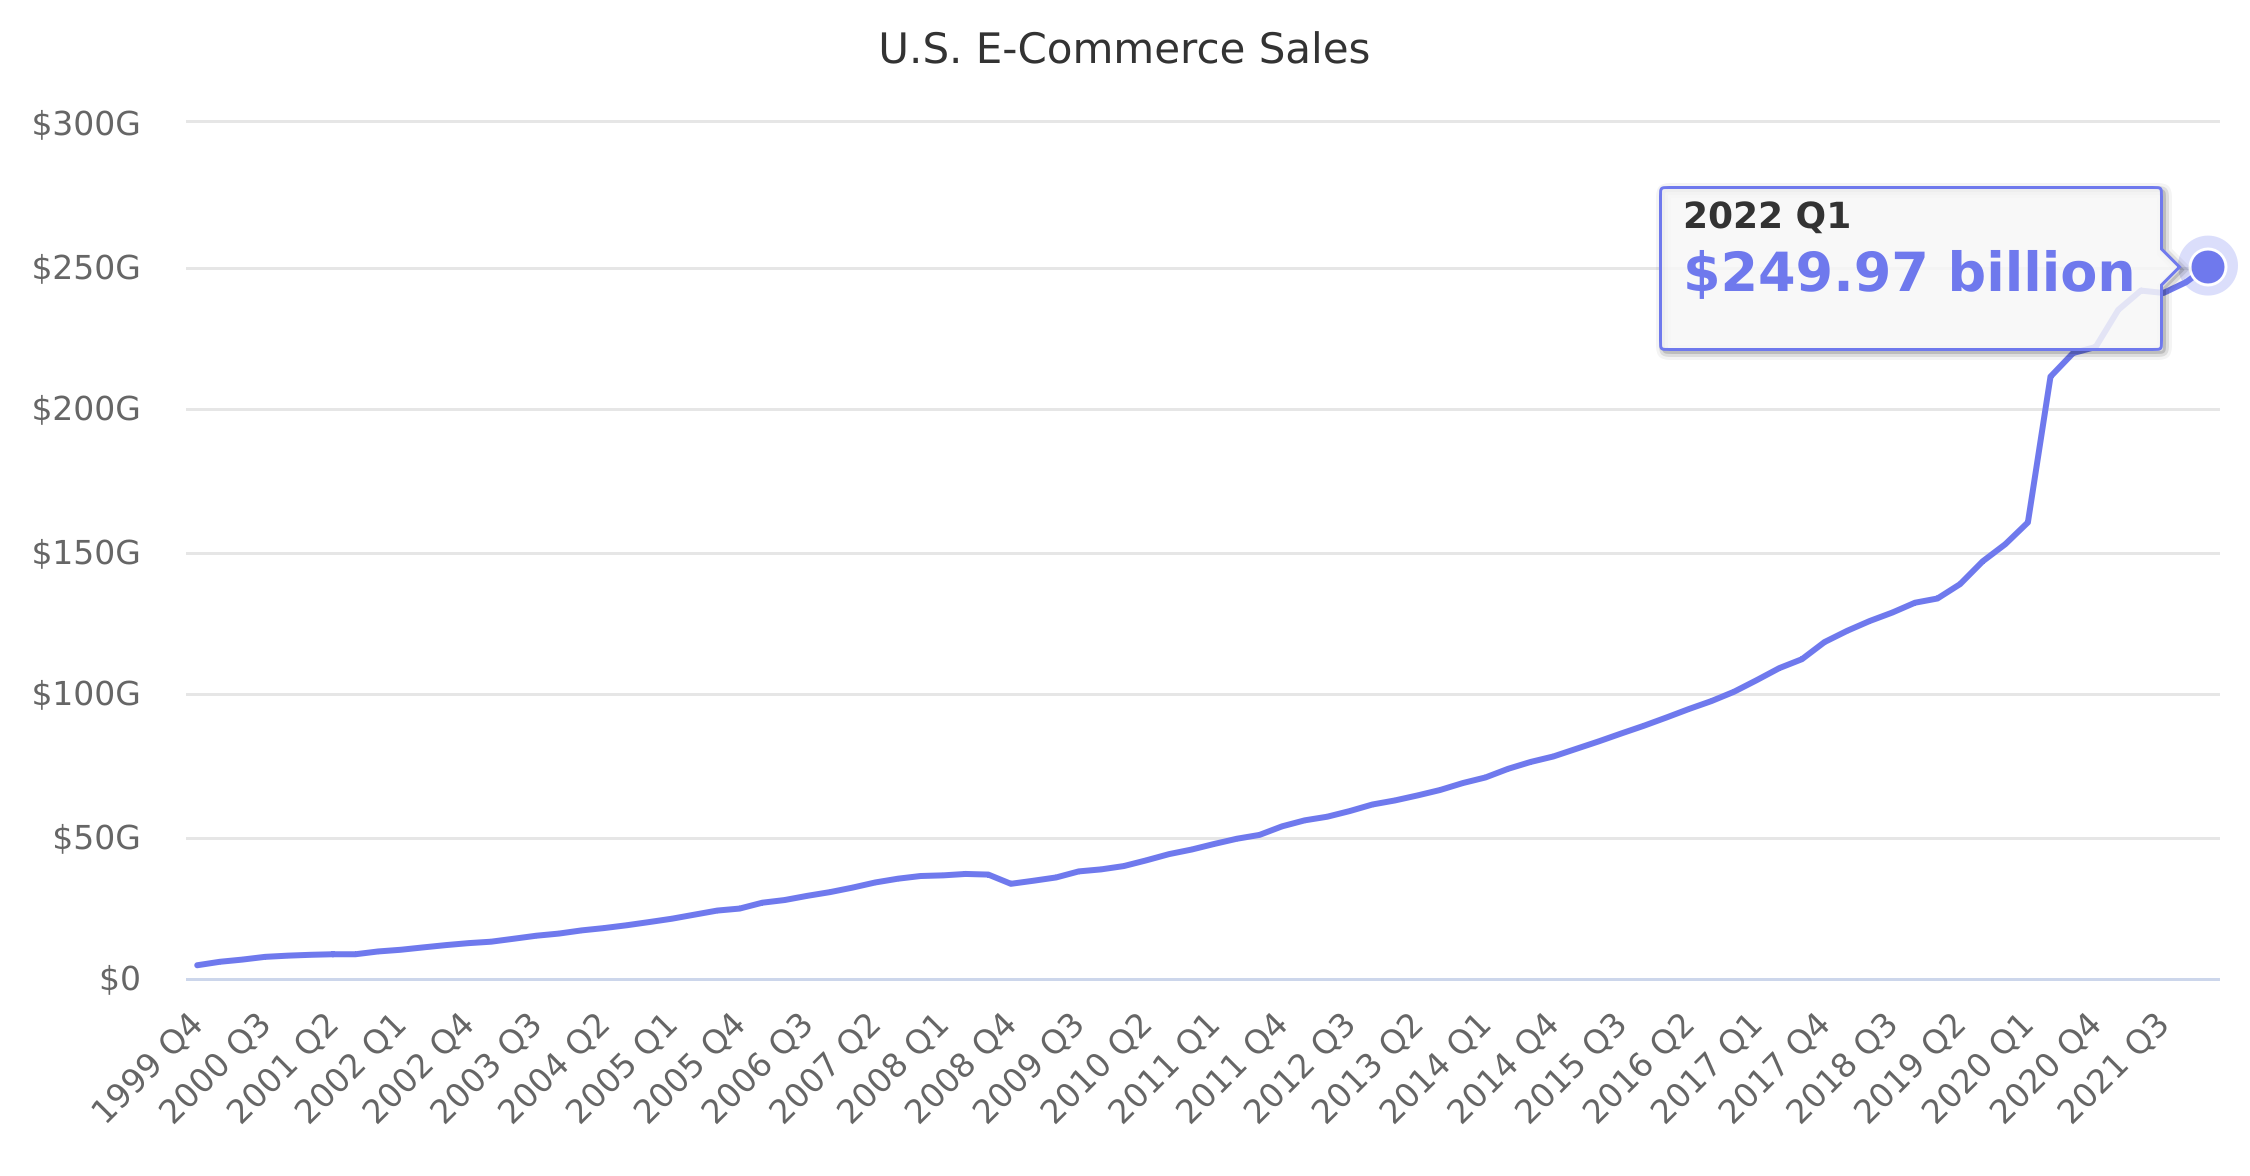 U.S. E-Commerce Sales 1999-2017